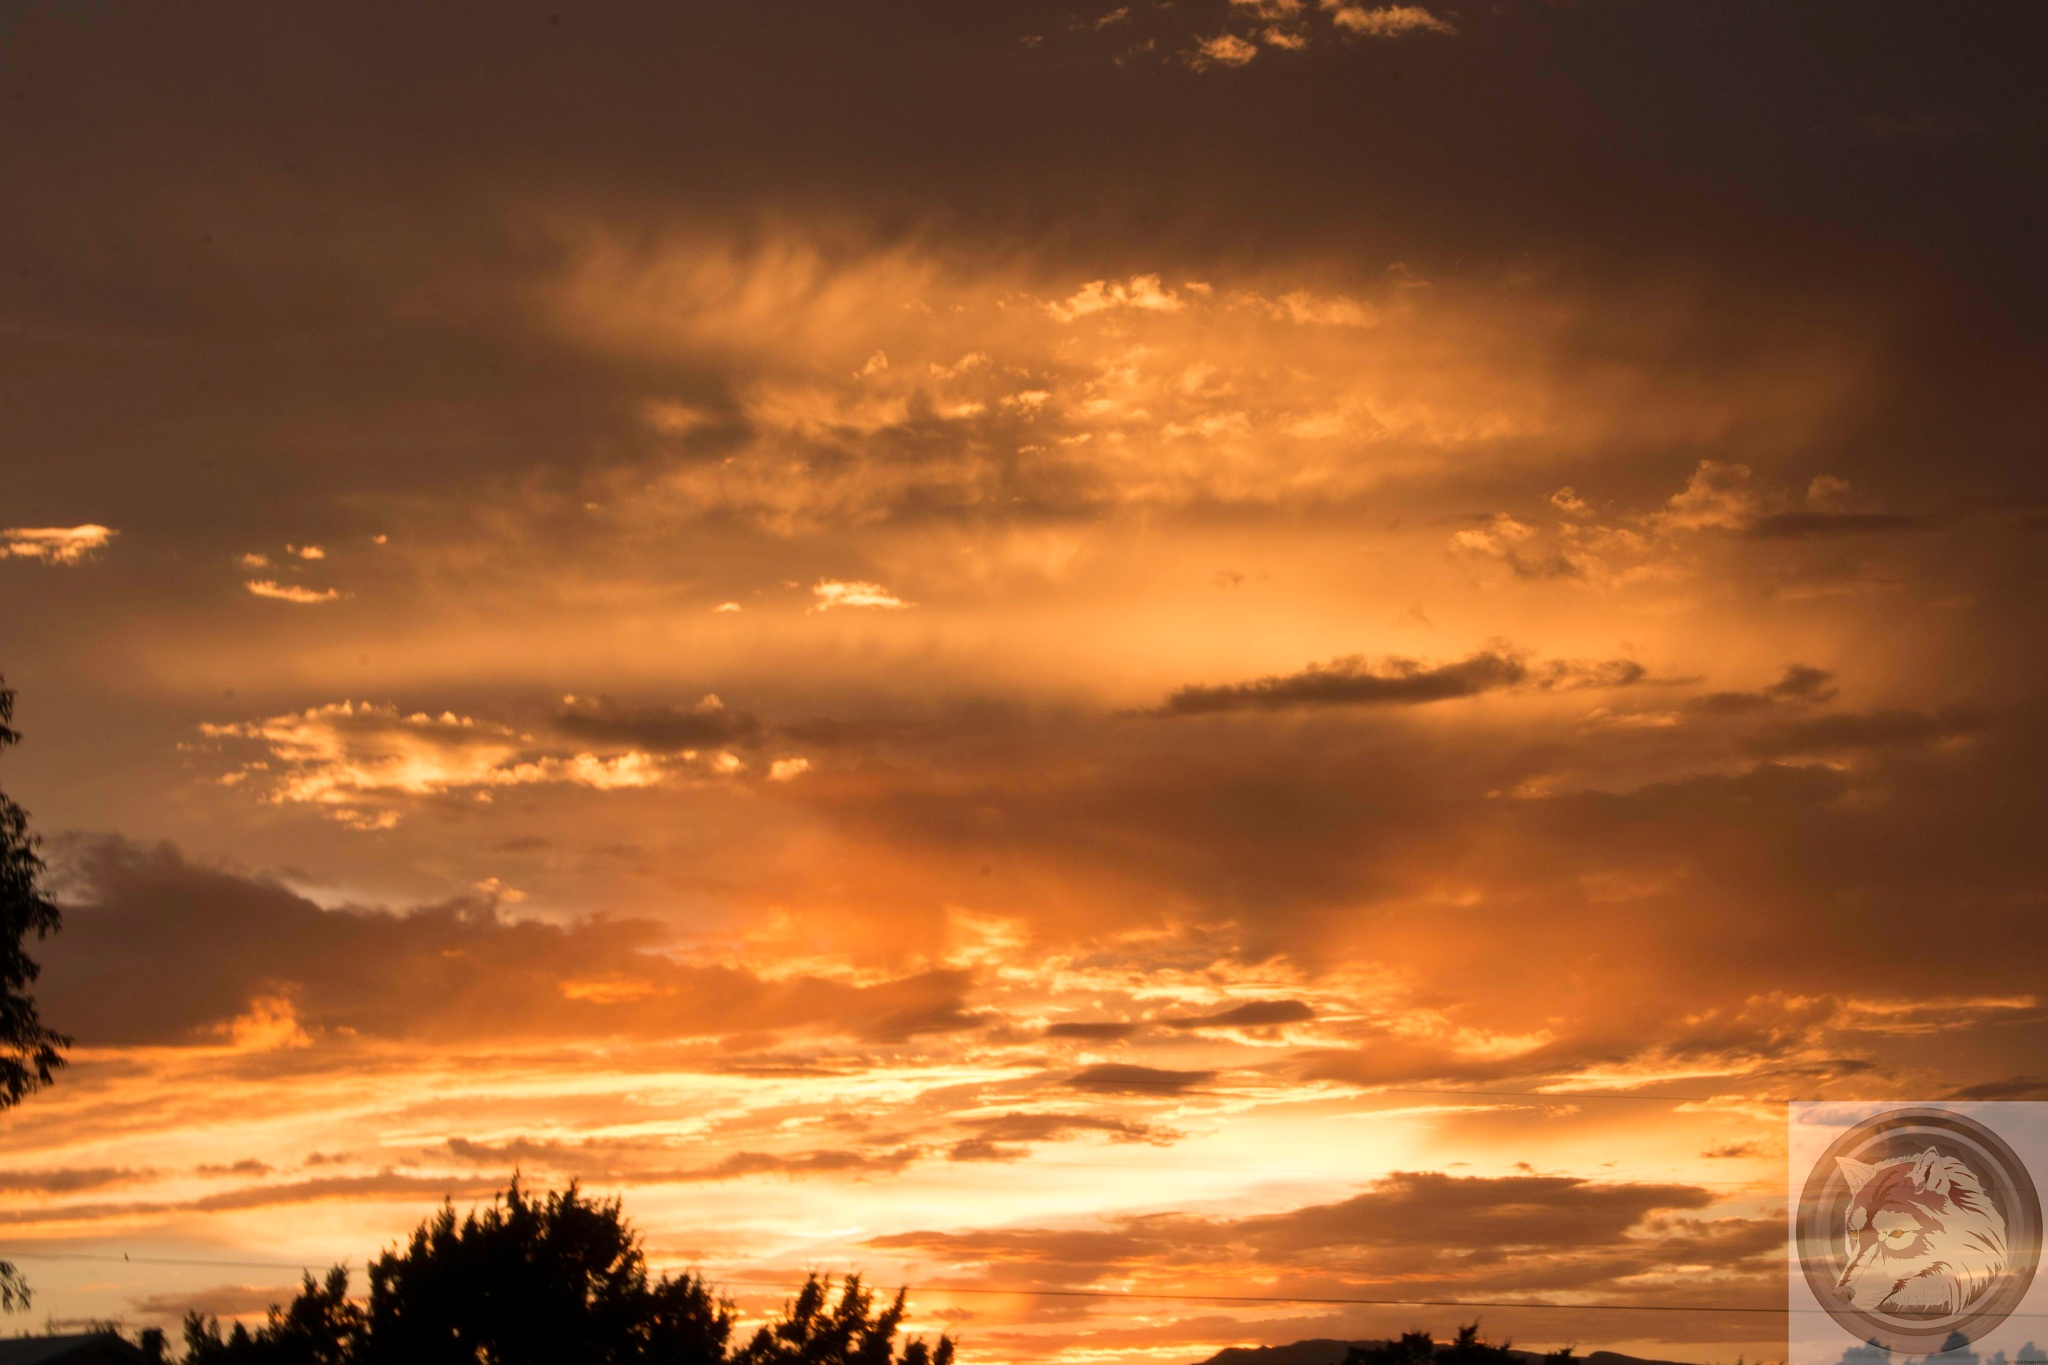 New Mexico Sunset by emsphotonut41